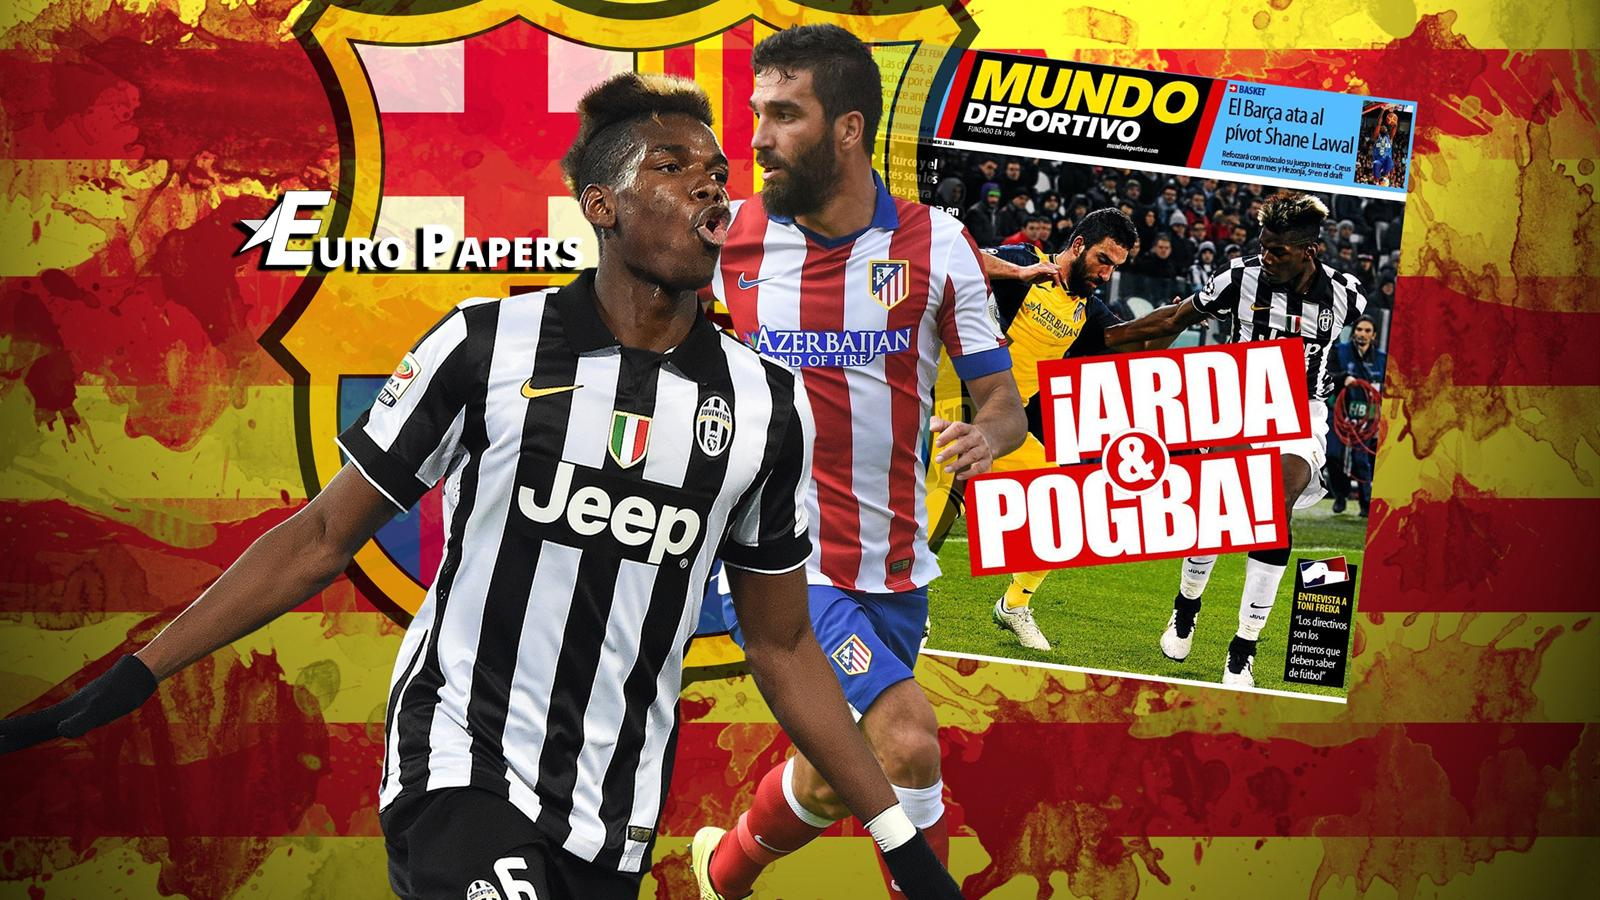 FC Barcelona poised to launch 'massive transfer bids' for Paul Pogba and Arda Turan - Euro Papers - Watch The Video NOW!